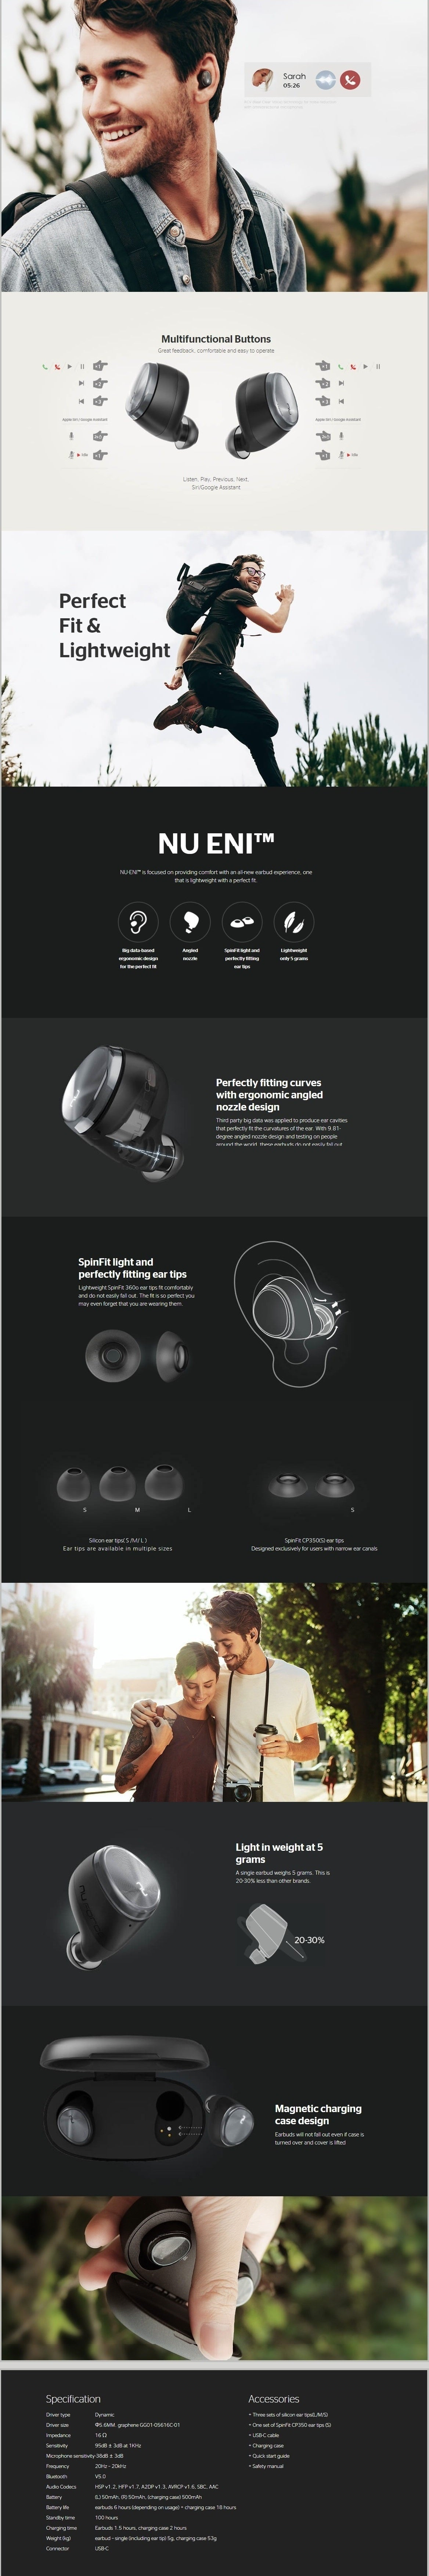 NuForce BE Free6 True Wireless Earbuds Main Features 3